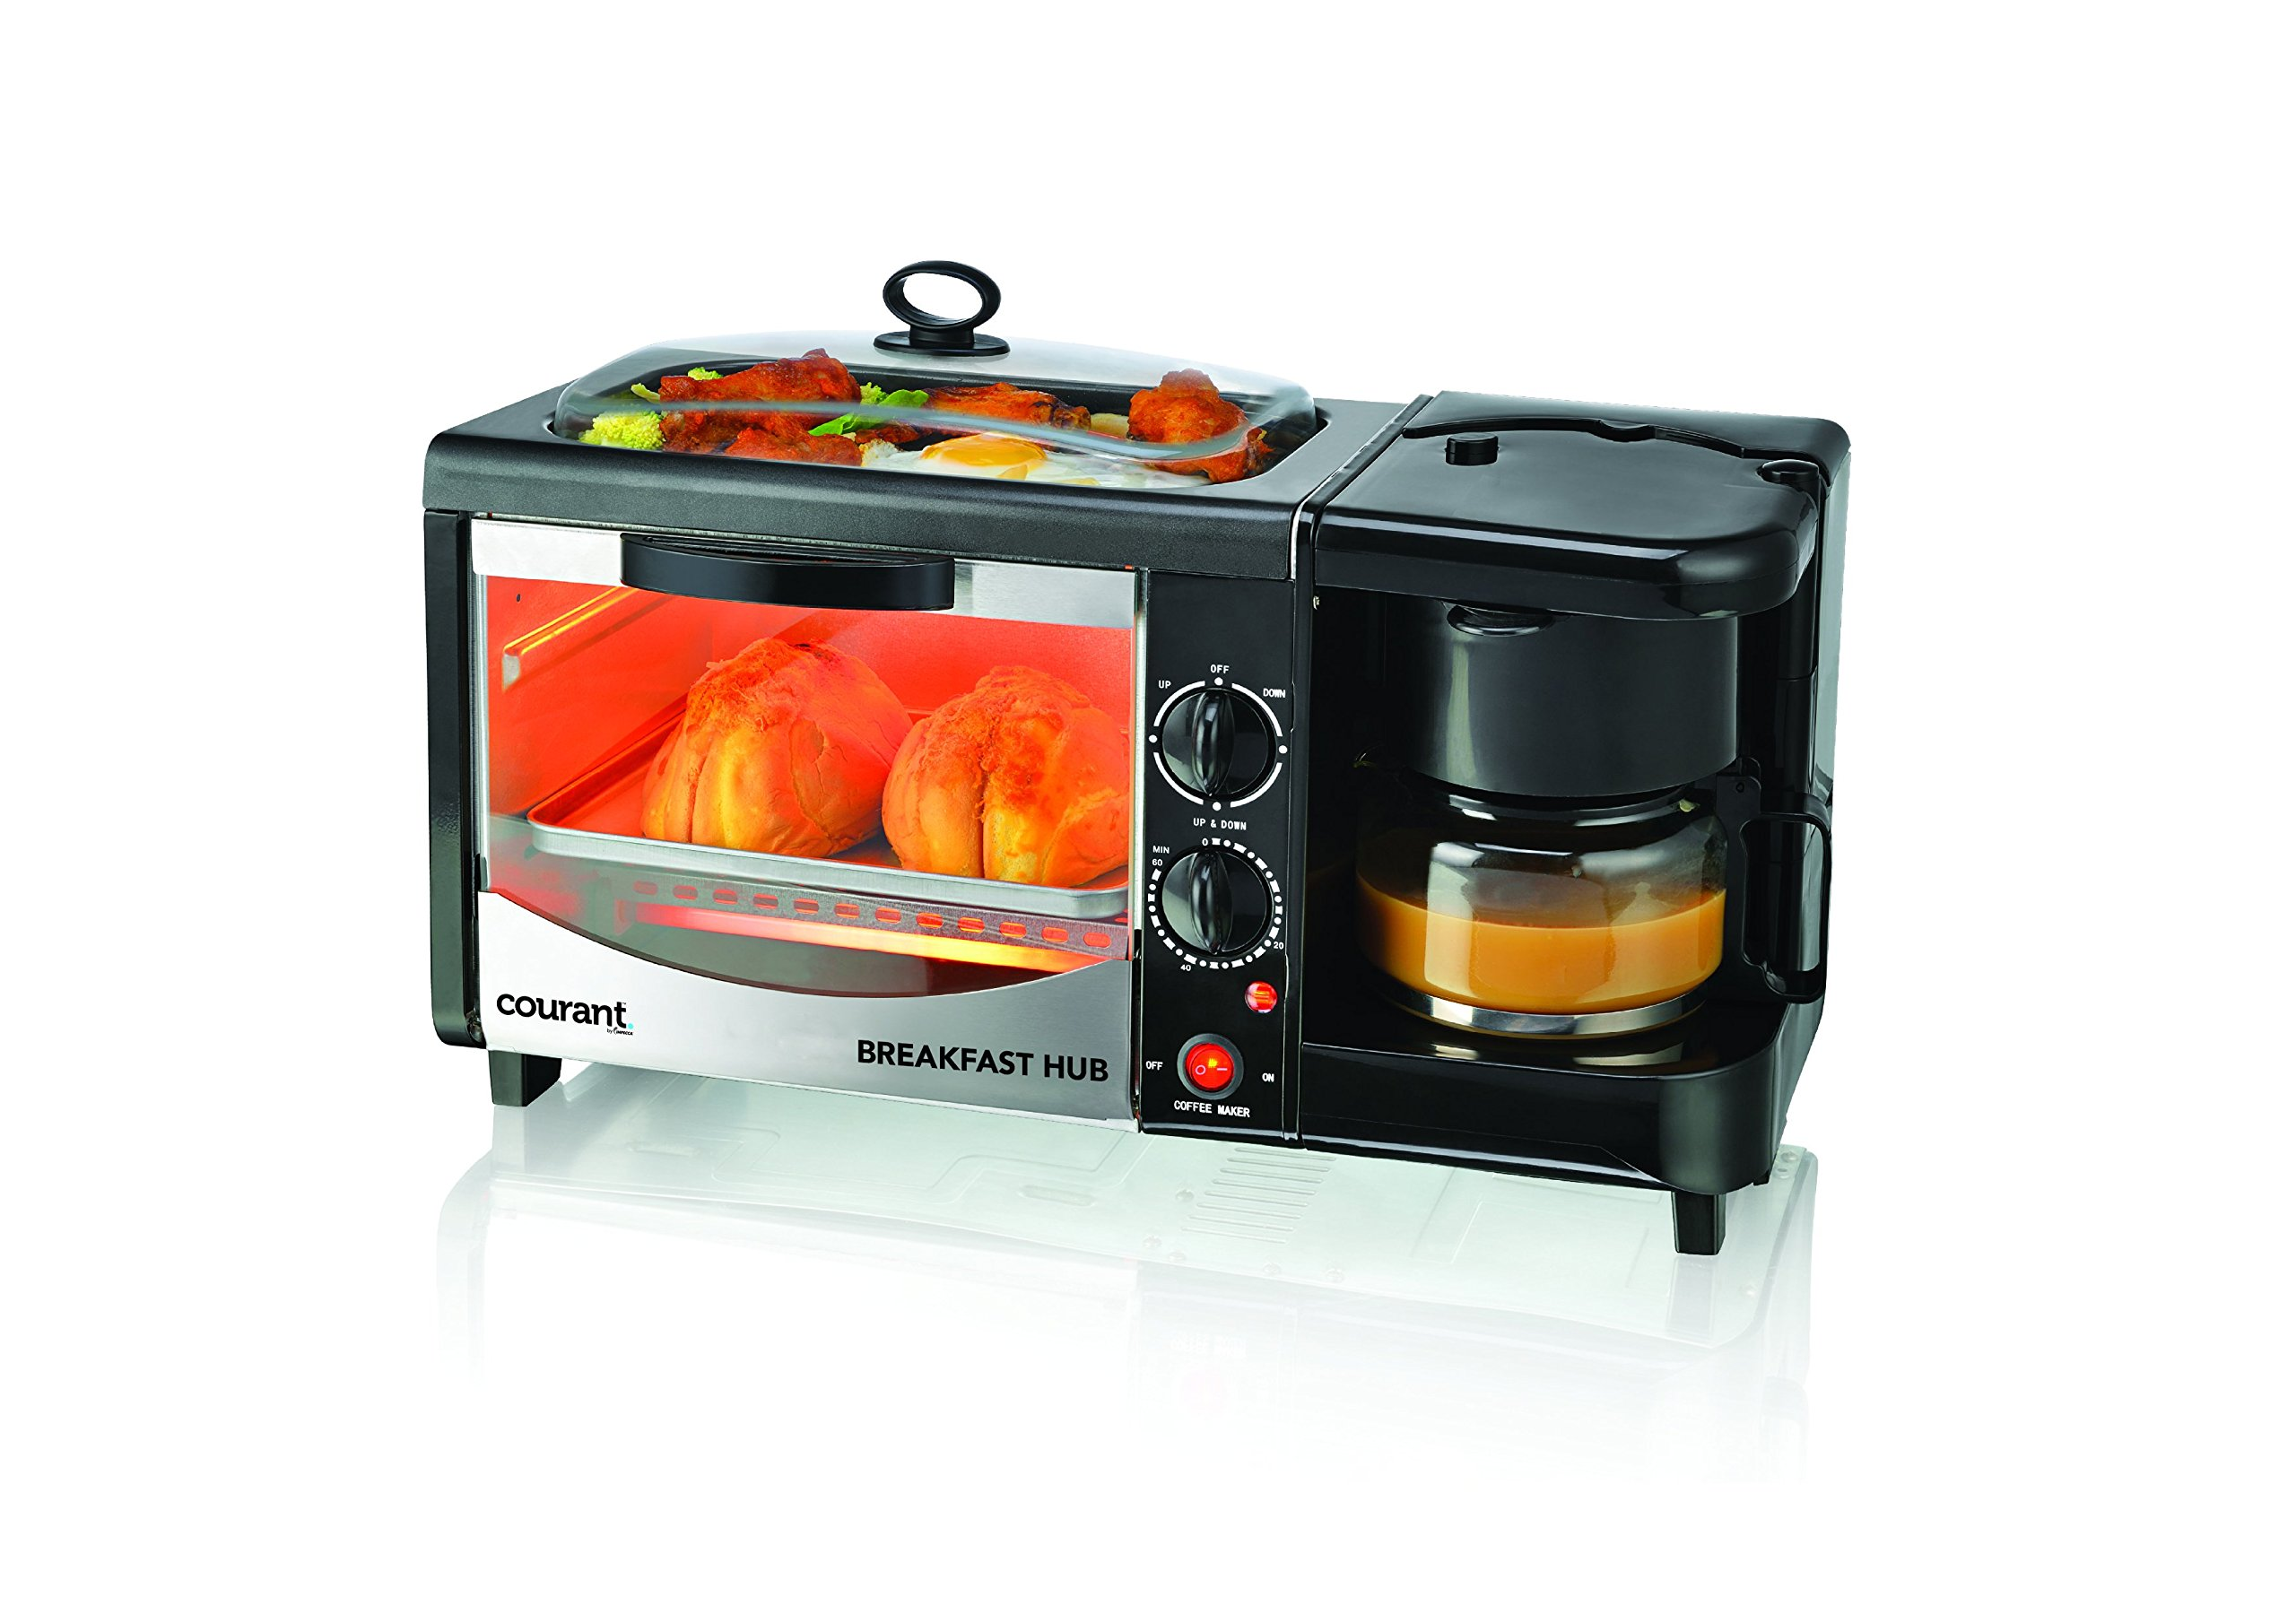 Courant 3-in-1 Multifunction Breakfast Hub (4 Slice Toaster Oven, Large 10'' Diameter Griddle Pan, Multi Cup Coffee Maker), Black by Courant